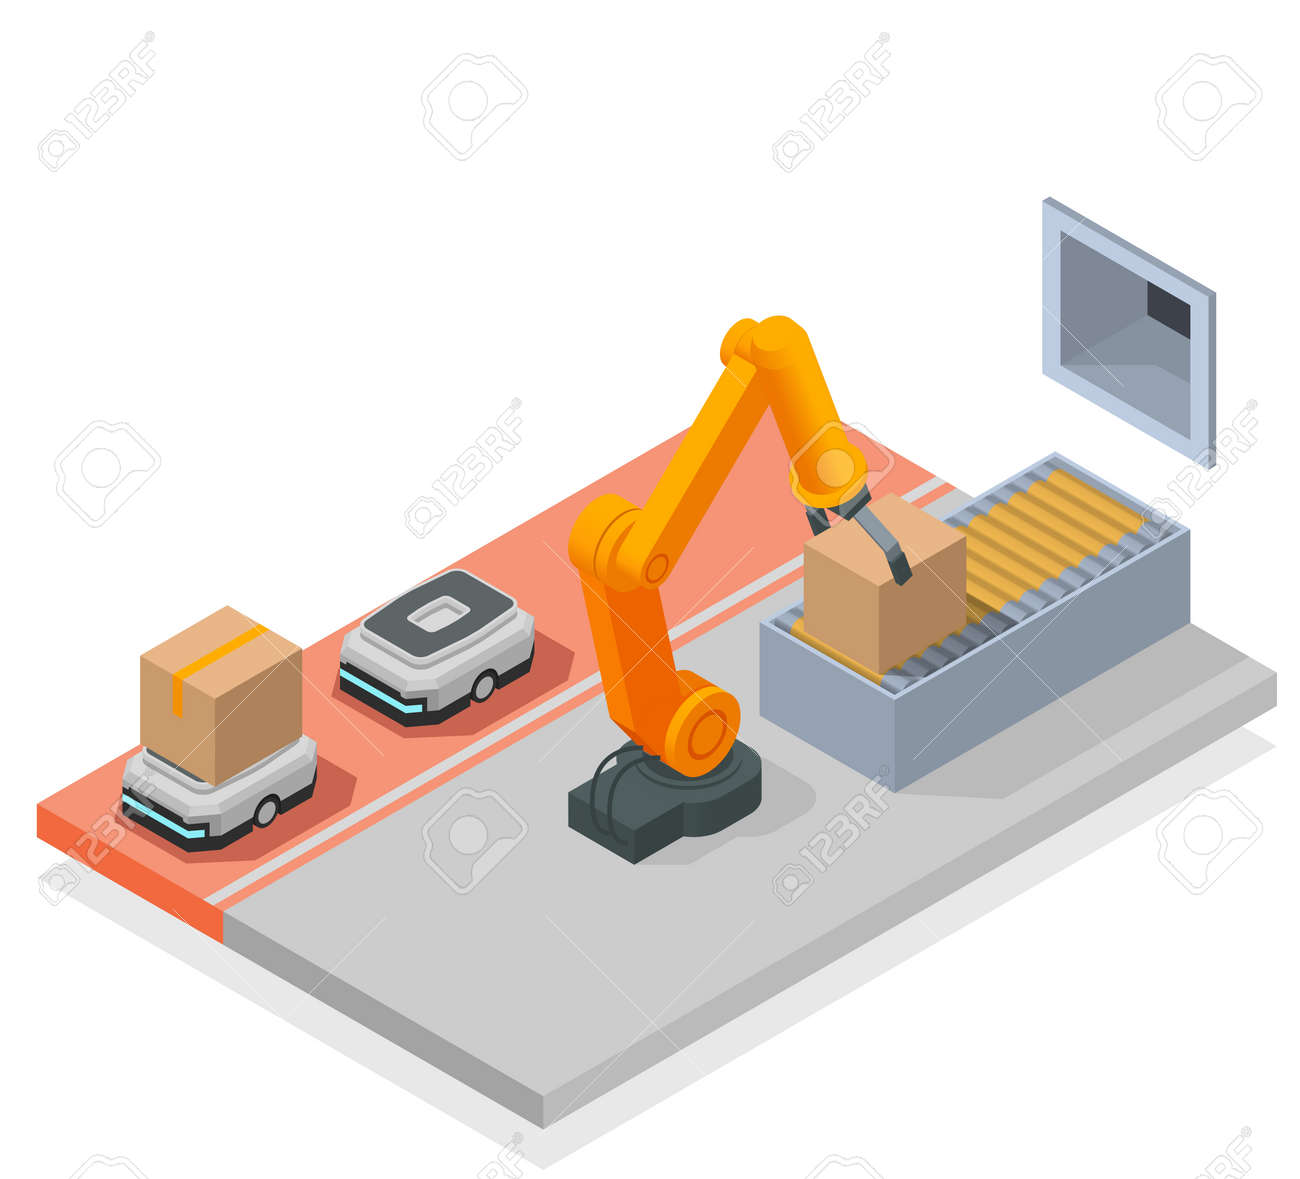 Modern Warehouse Colored Isometric Composition - 171636012